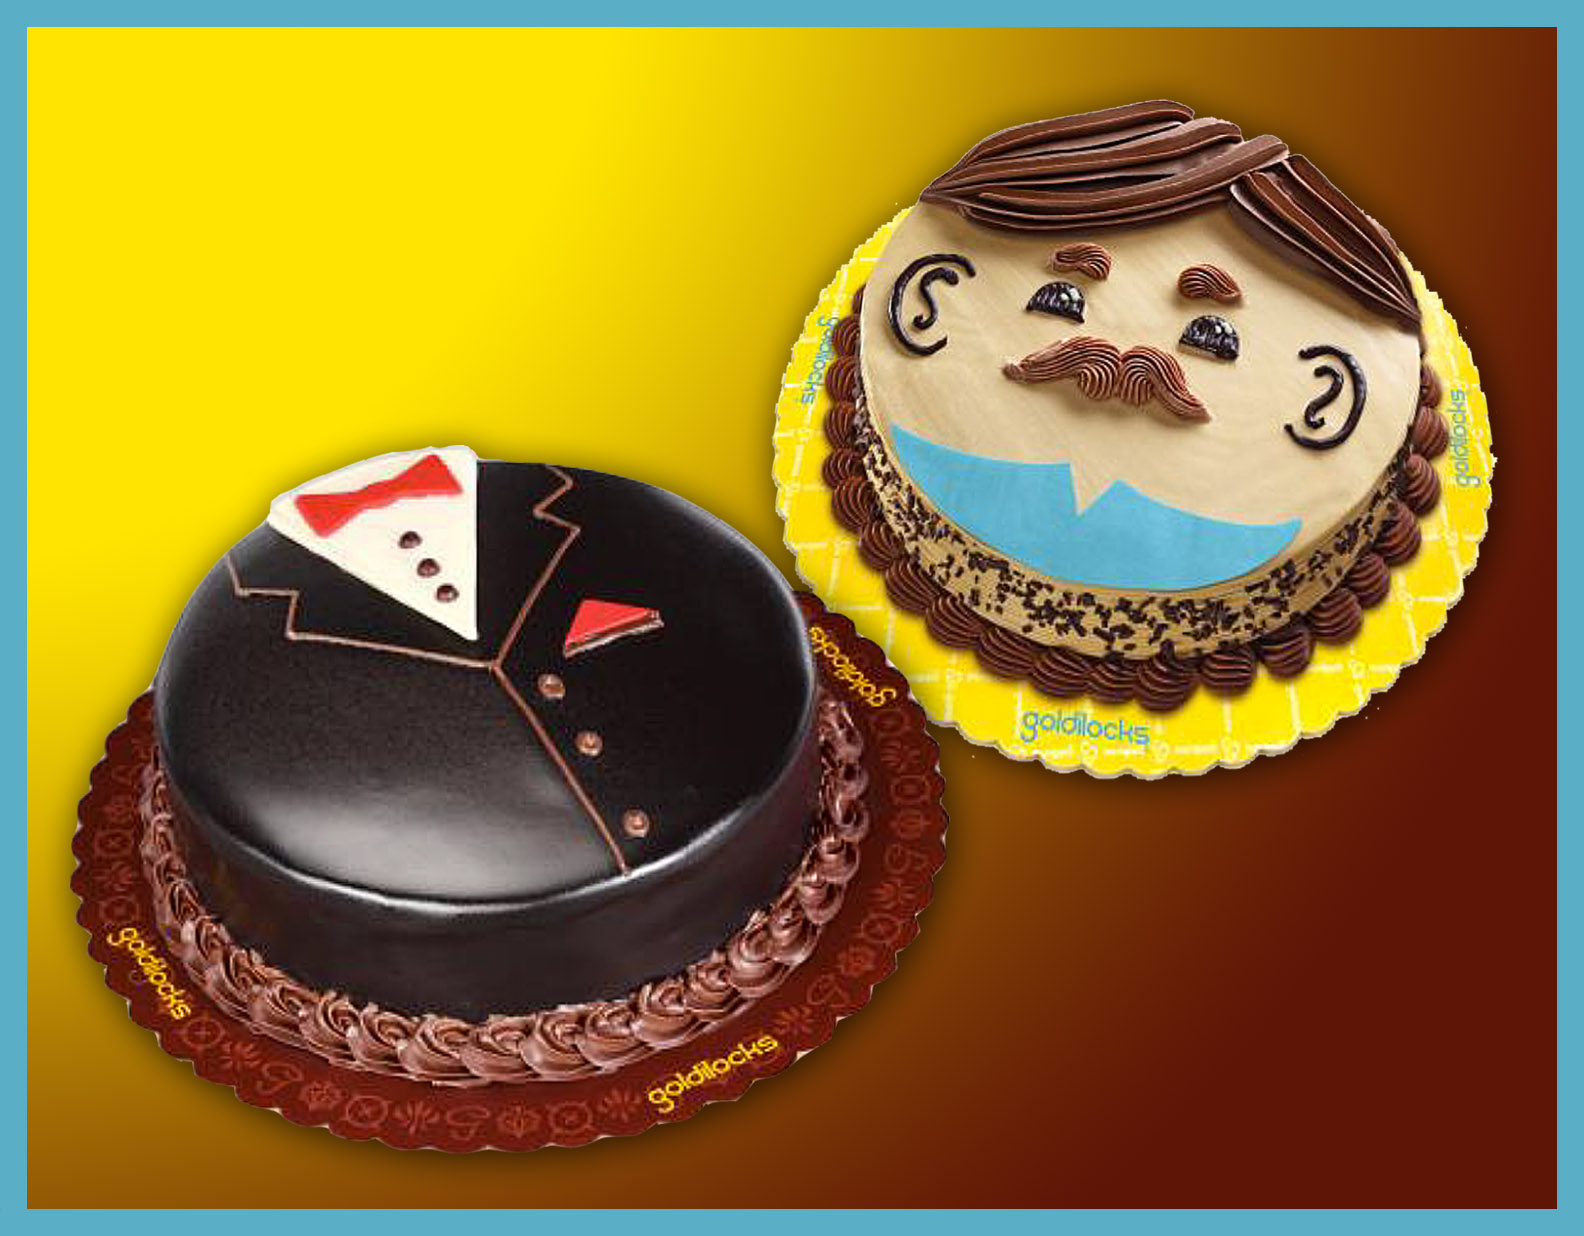 12 Father's Day Cakes For Kids To Help Make for DAD! - Six ...   Dad Cakes